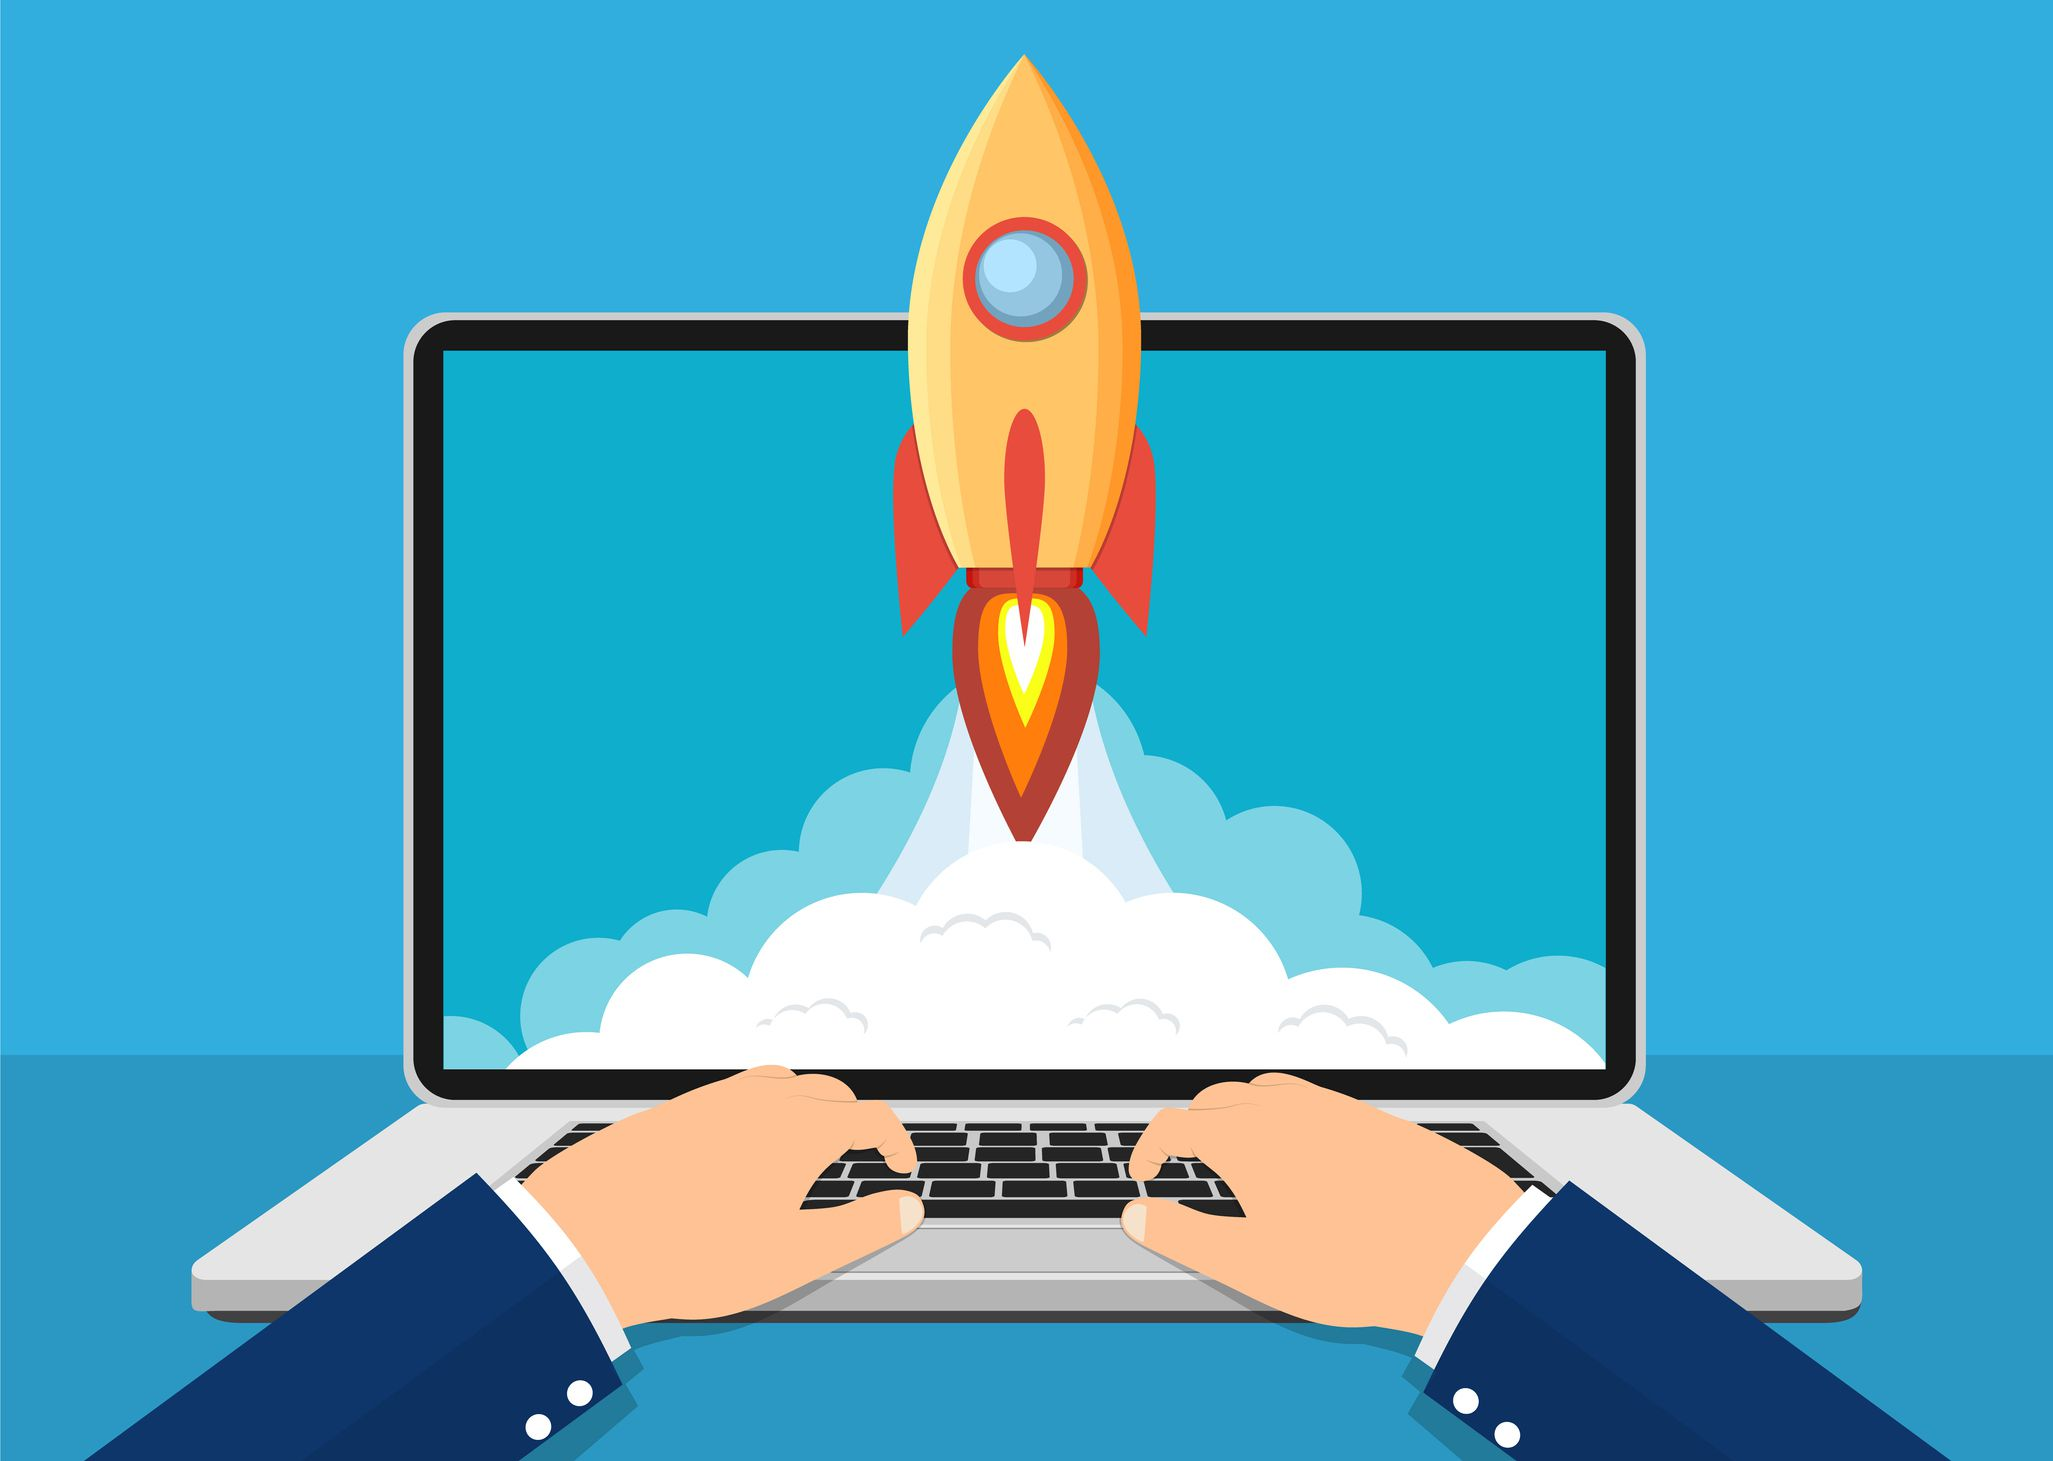 Illustration of hands using new laptop computer with rocket taking off out of the screen